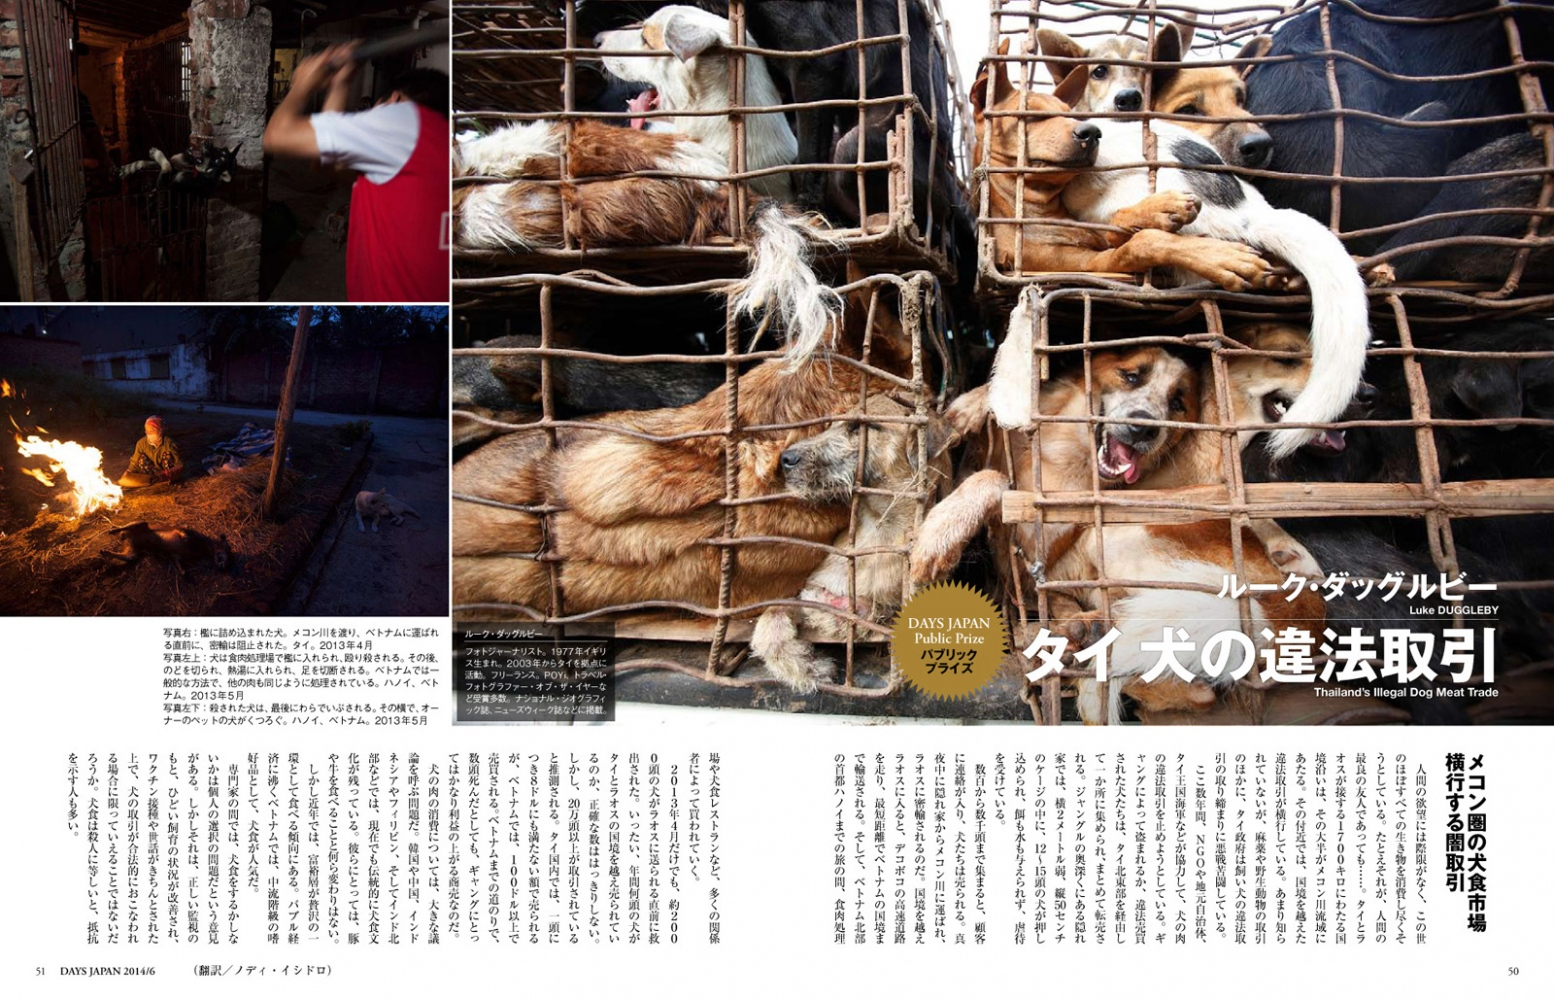 Client: DAYS Japan Magazine